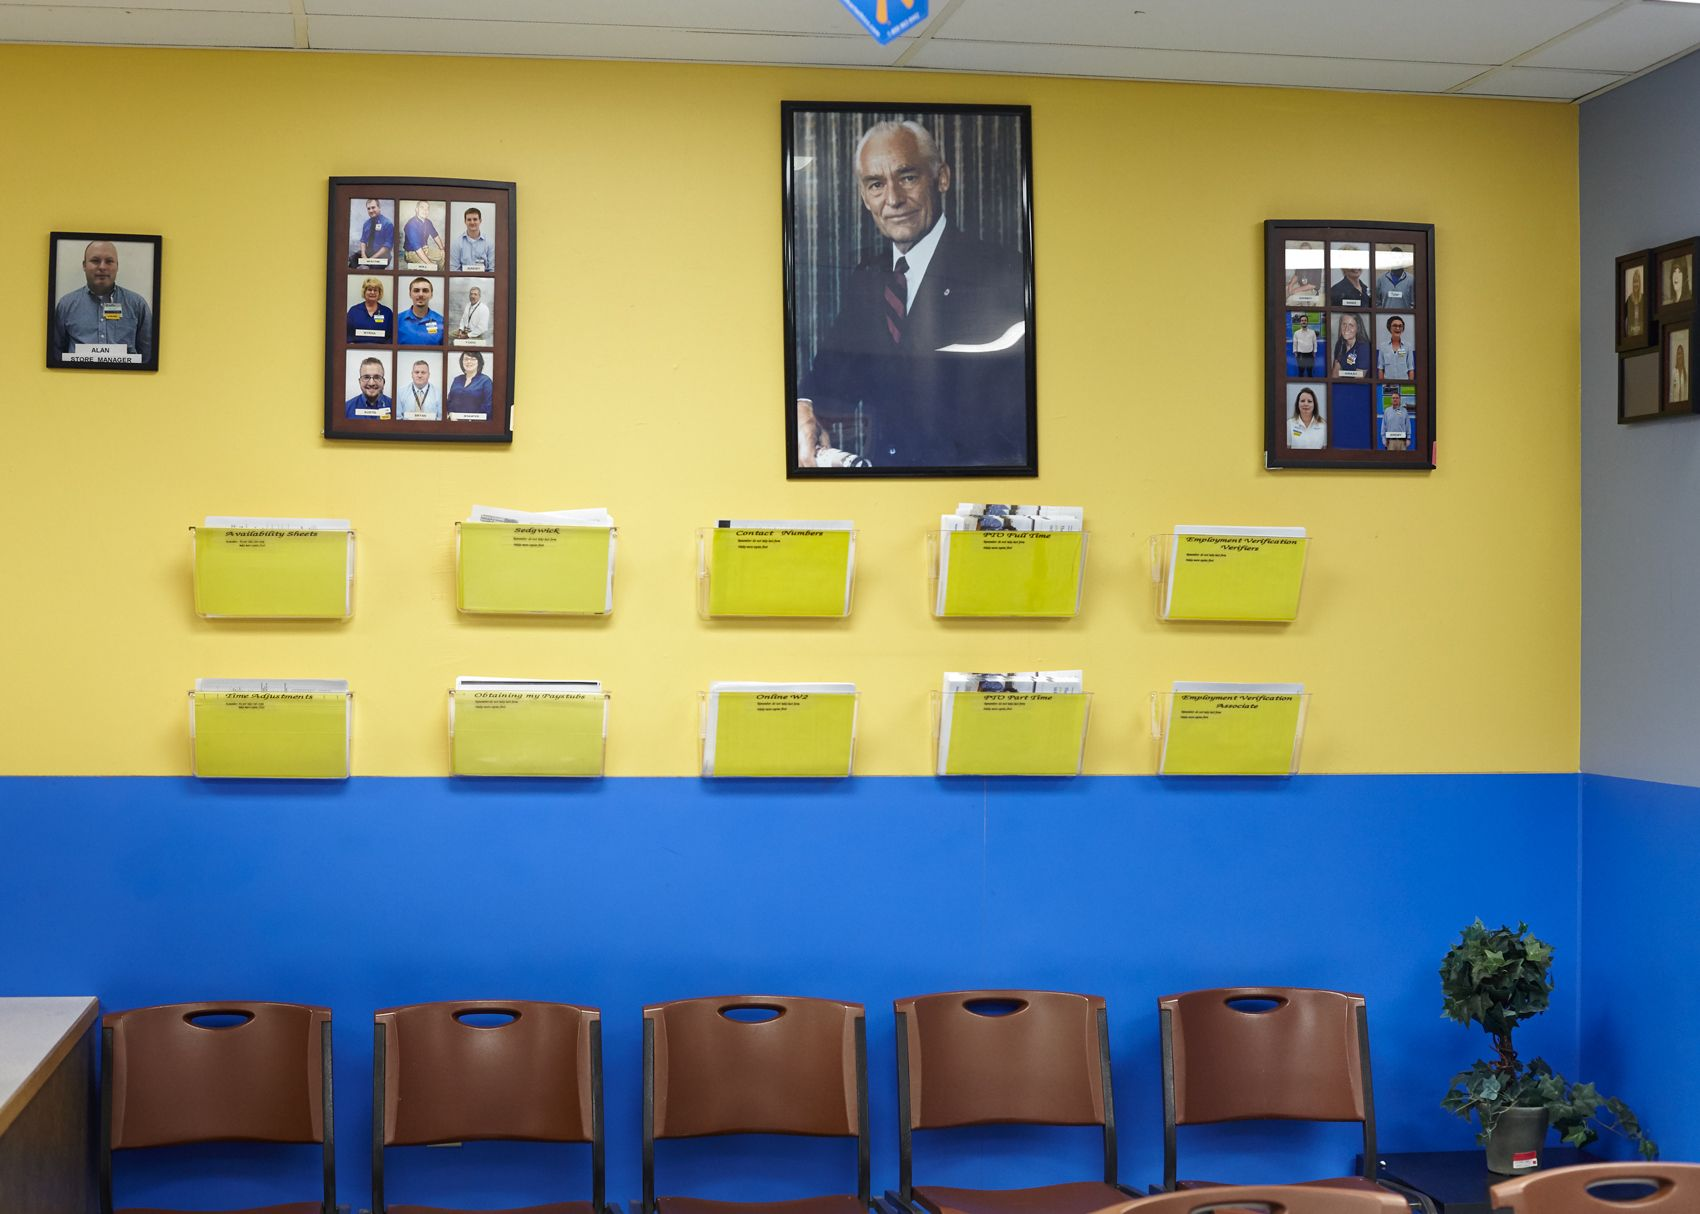 Manager's Office Featuring Portraits of Sam Walton and Store Employees, Williamsburg Kentucky